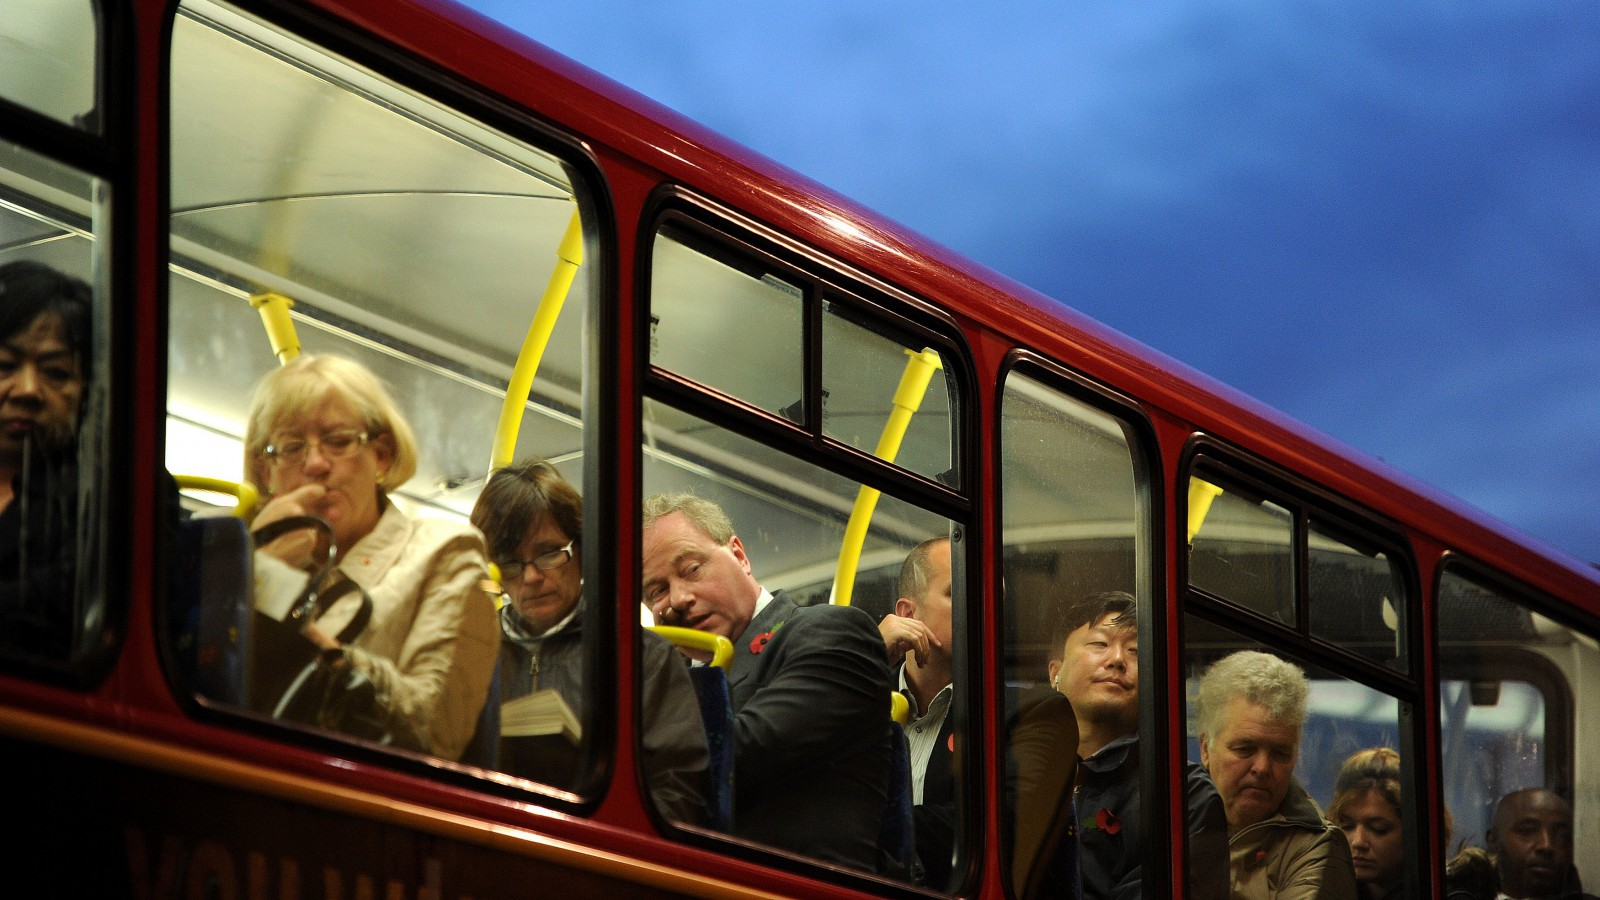 Passengers sit on the top deck of a bus in the City of London, November 10, 2011.  REUTERS/Paul Hackett  (BRITAIN - Tags: BUSINESS TRAVEL) - RTR2TU4X